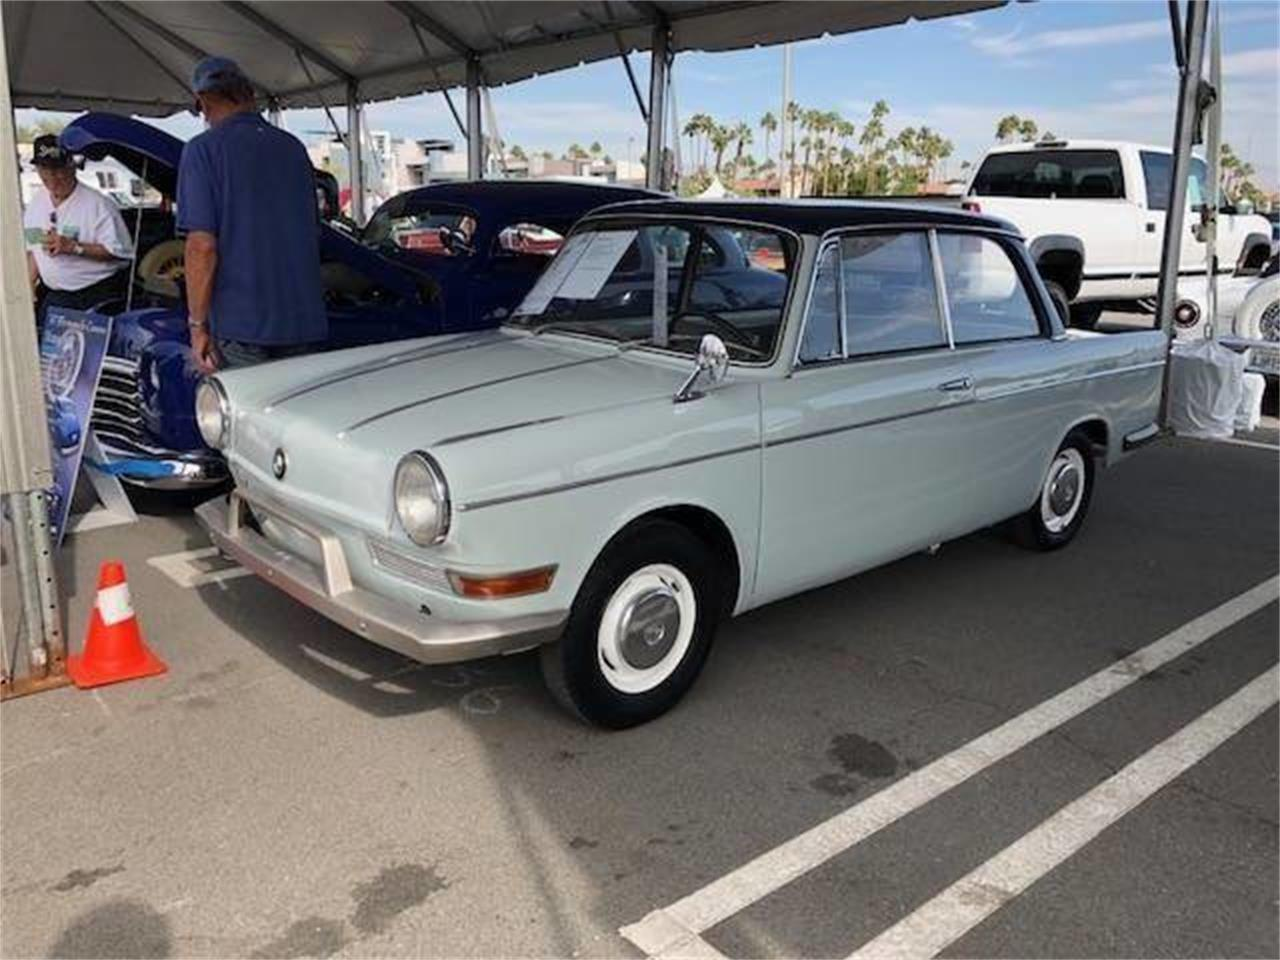 for sale 1963 bmw 7 series in long island, new york cars - ronkonkoma, ny at geebo